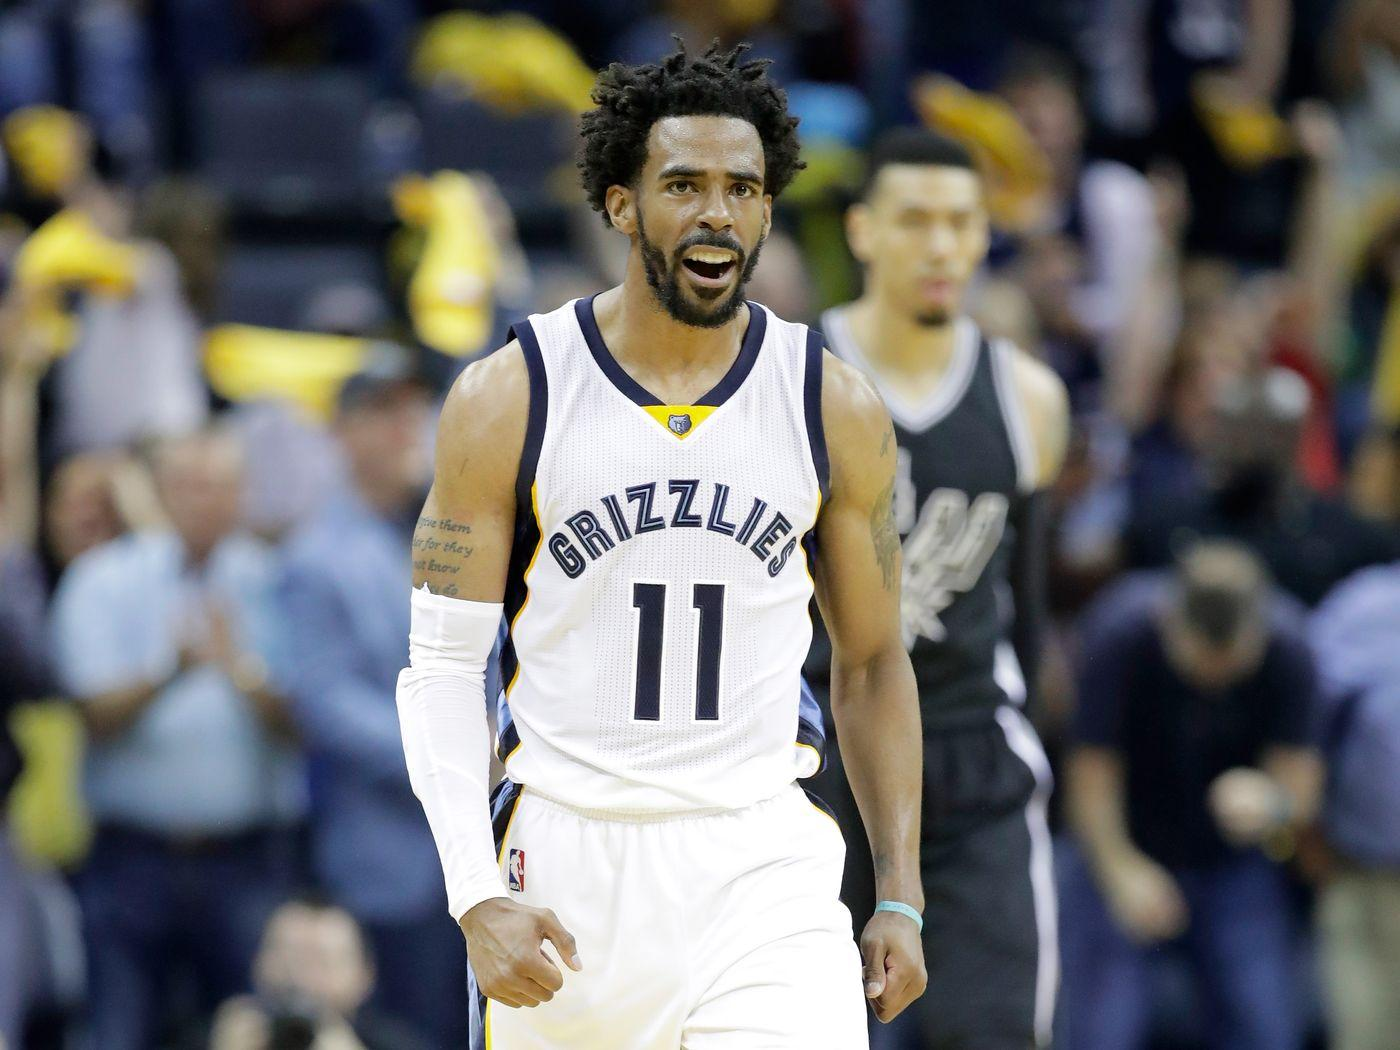 Grizzlies-Spurs Game 4 was an instant classic thanks to Mike Conley ...